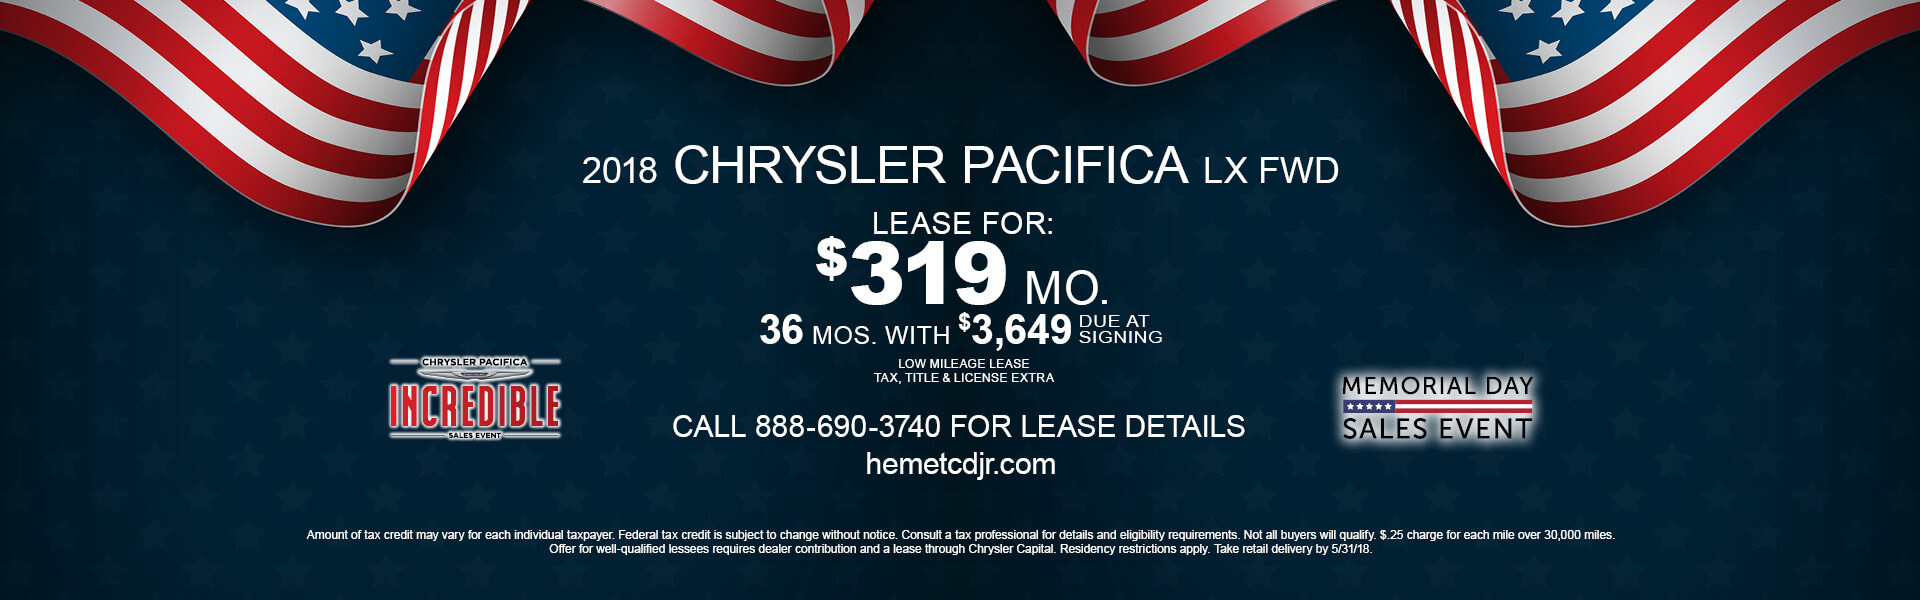 Chrysler Pacifica $319 Lease